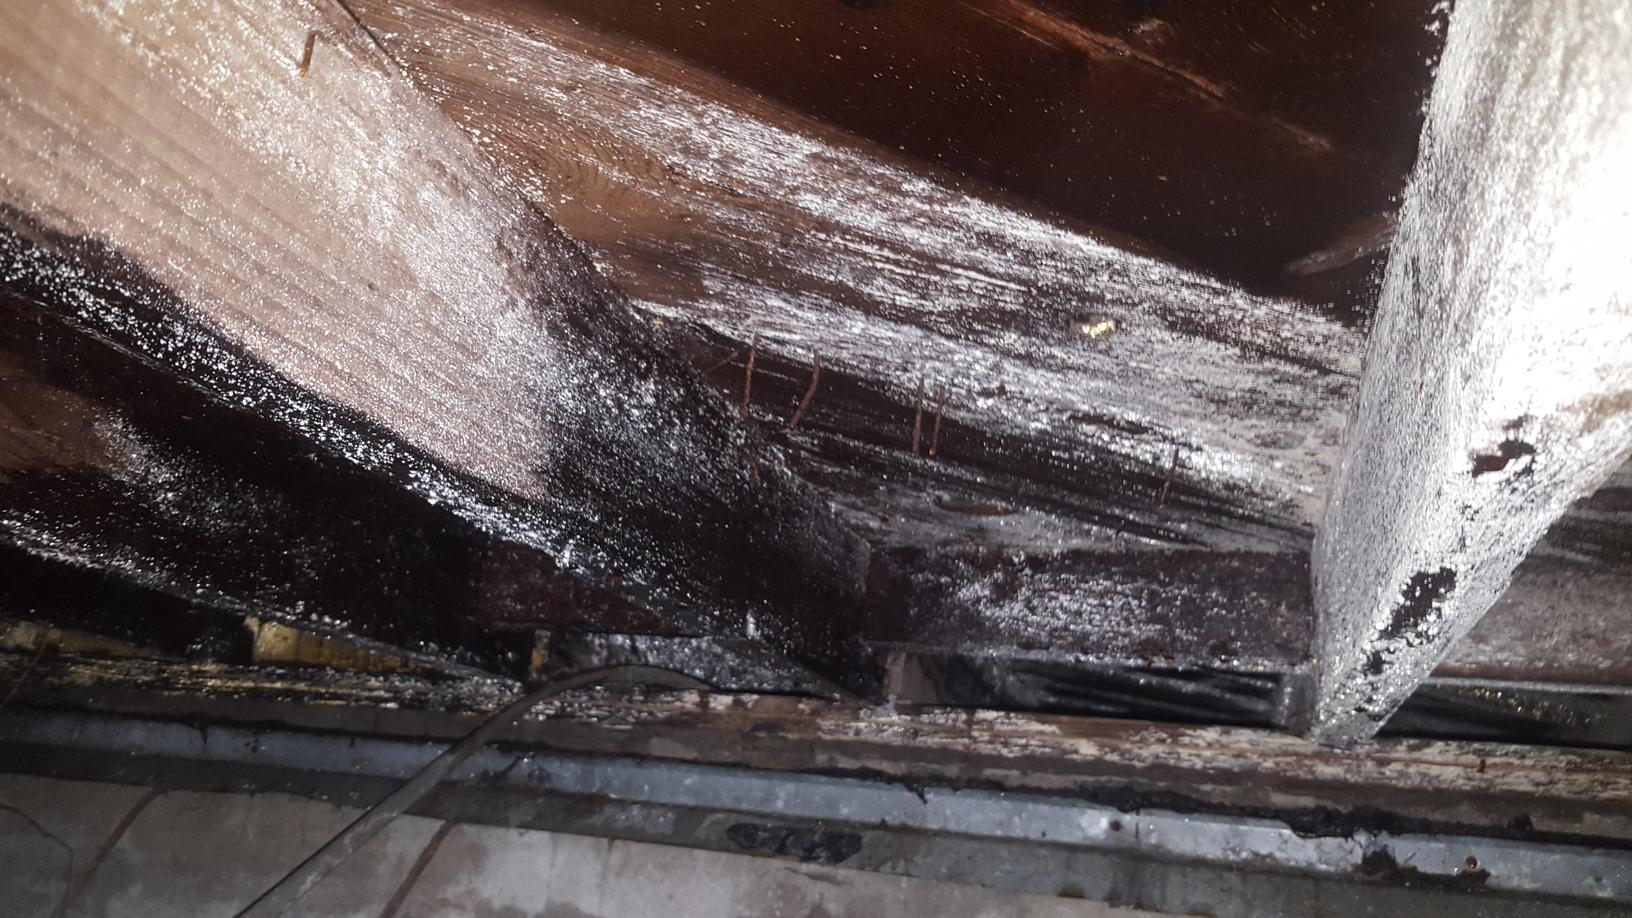 Moldy Crawl Space The Colony TX